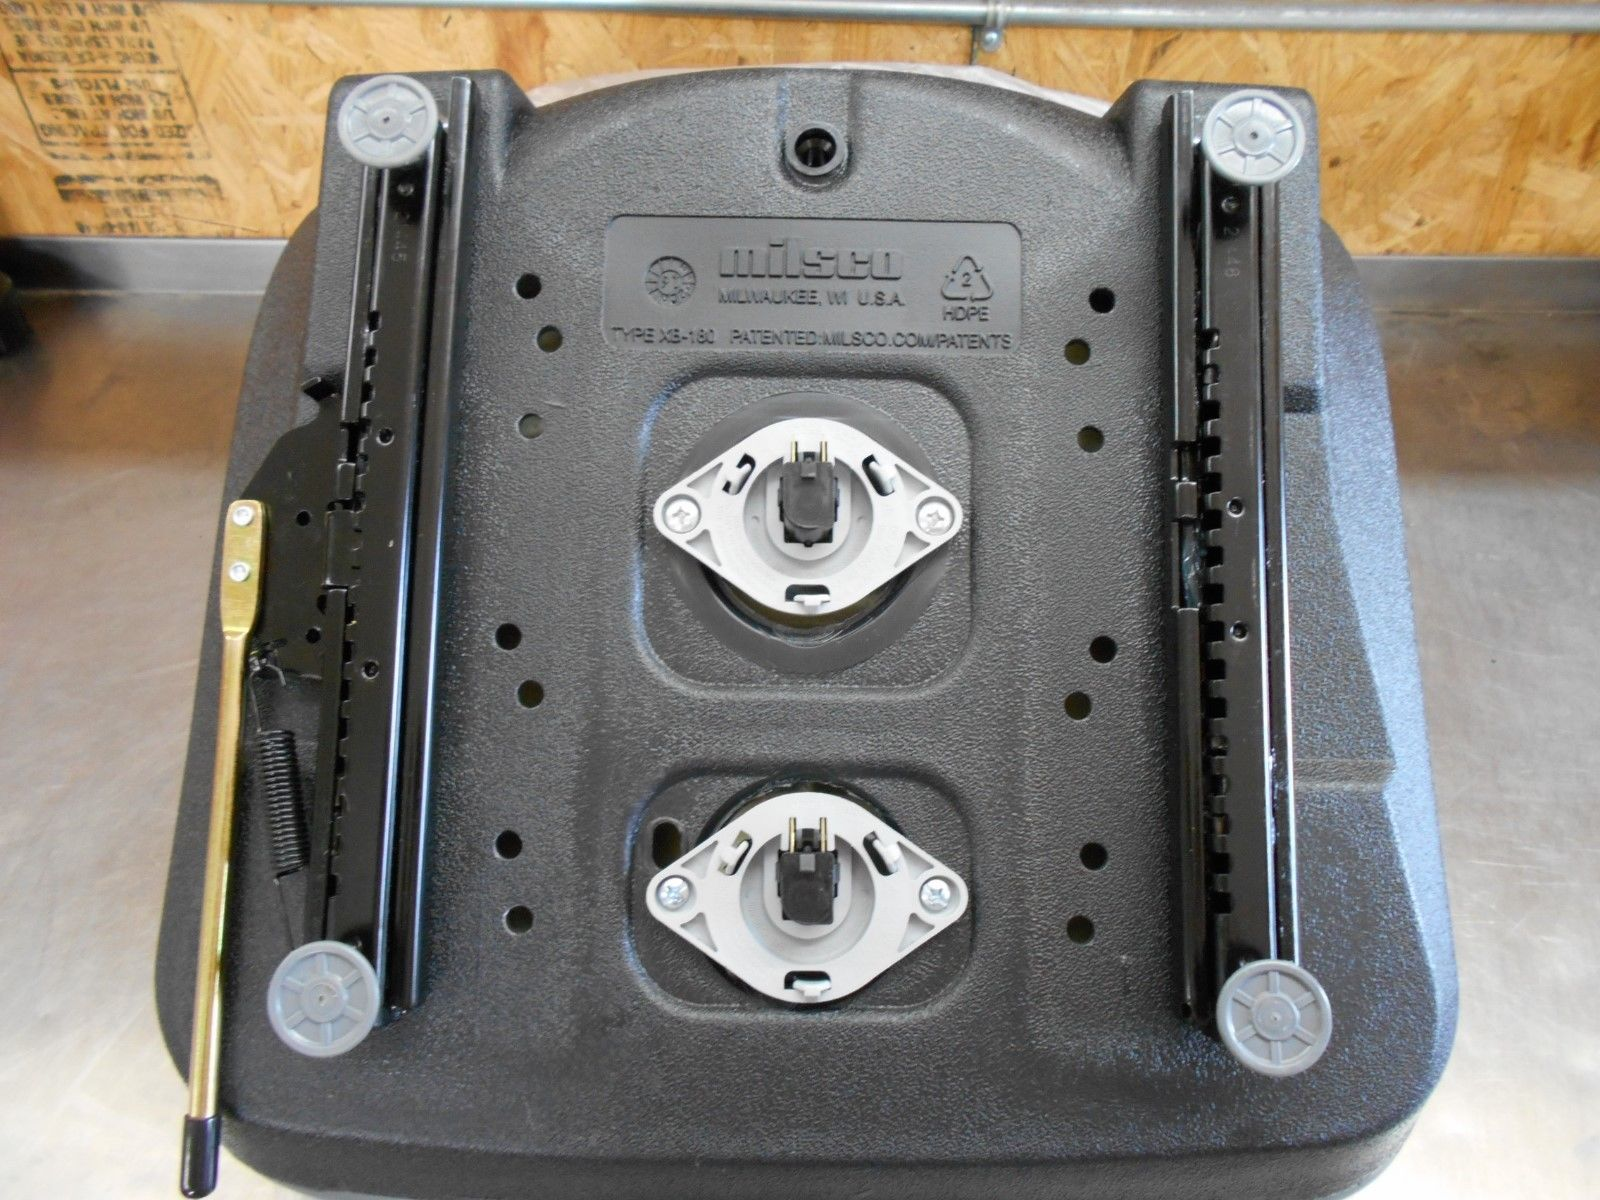 BLACK SEAT FORD NEW HOLLAND SKID STEER, COMES WITH TWO SEAT SWITCHES on new holland c185 wiring diagram, new holland l250 wiring diagram, new holland l220 wiring diagram, new holland lx565 wiring diagram, new holland l553 wiring diagram, new holland l170 wiring diagram, new holland c190 wiring diagram, new holland ls160 wiring diagram, new holland ls180 wiring diagram, new holland l180 wiring diagram, new holland l775 wiring diagram, new holland lb115 wiring diagram, new holland l555 wiring diagram, new holland ls170 wiring diagram, new holland l785 wiring diagram, new holland l218 wiring diagram, new holland l185 wiring diagram, new holland l454 wiring diagram,